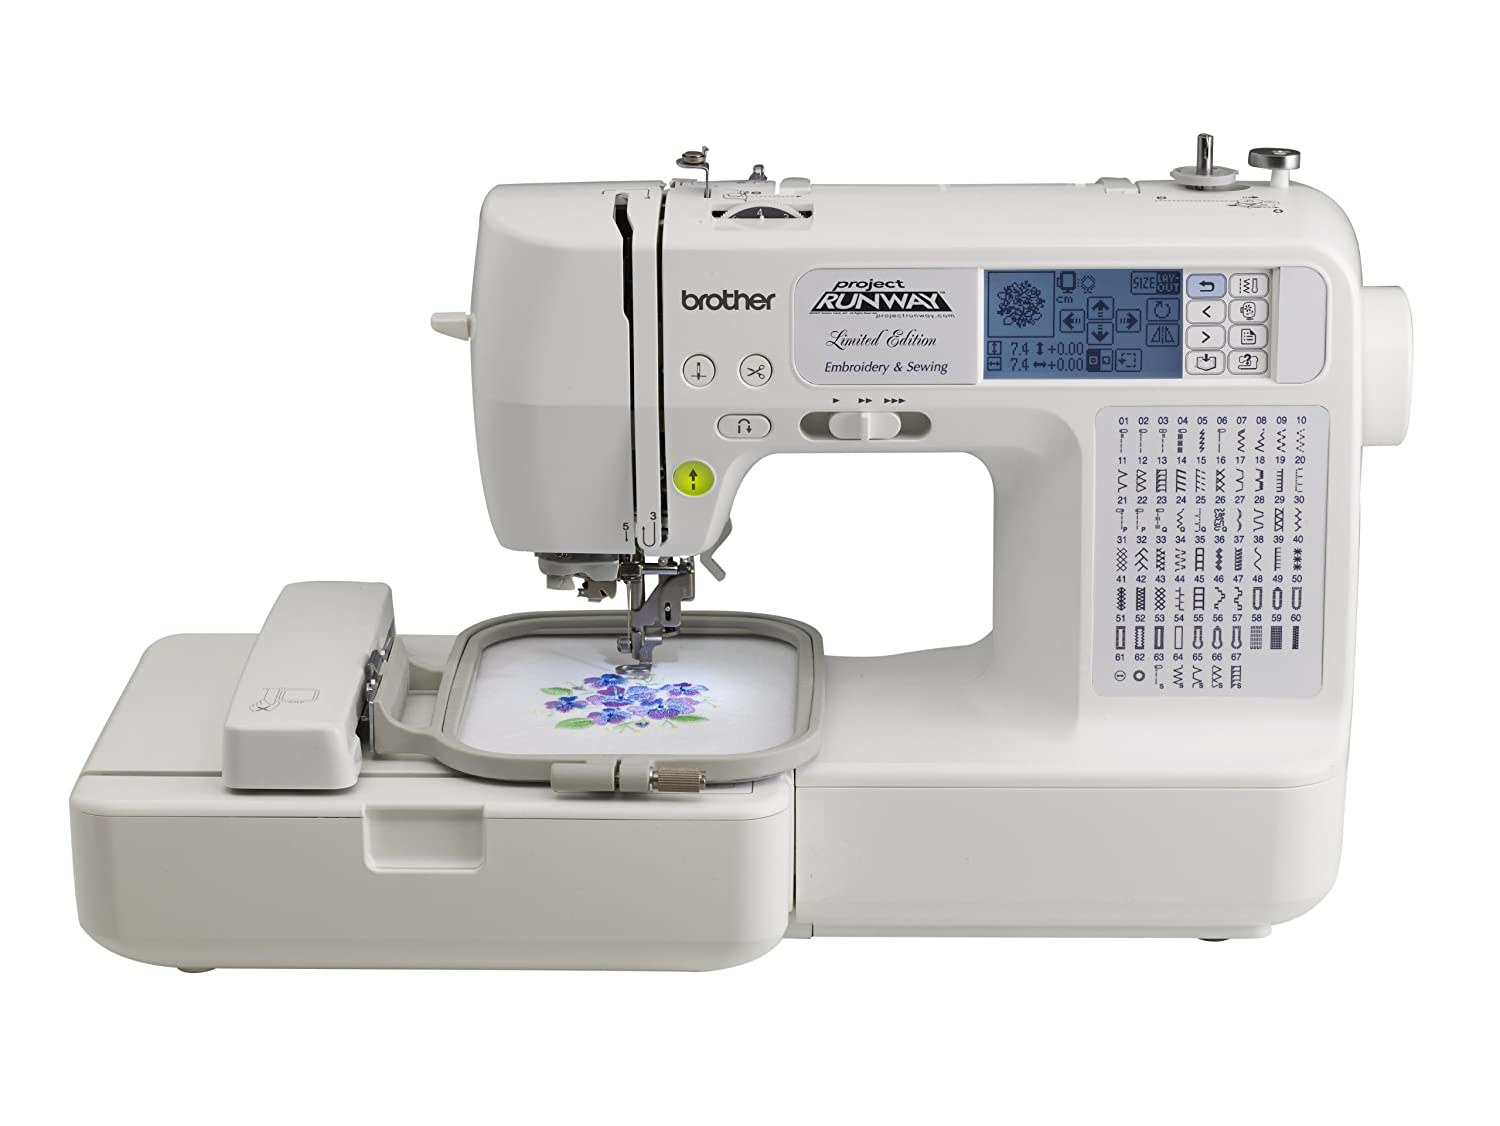 Image result for Brother LP6800 Sewing and Embroidery Machine, Project Runway Edition